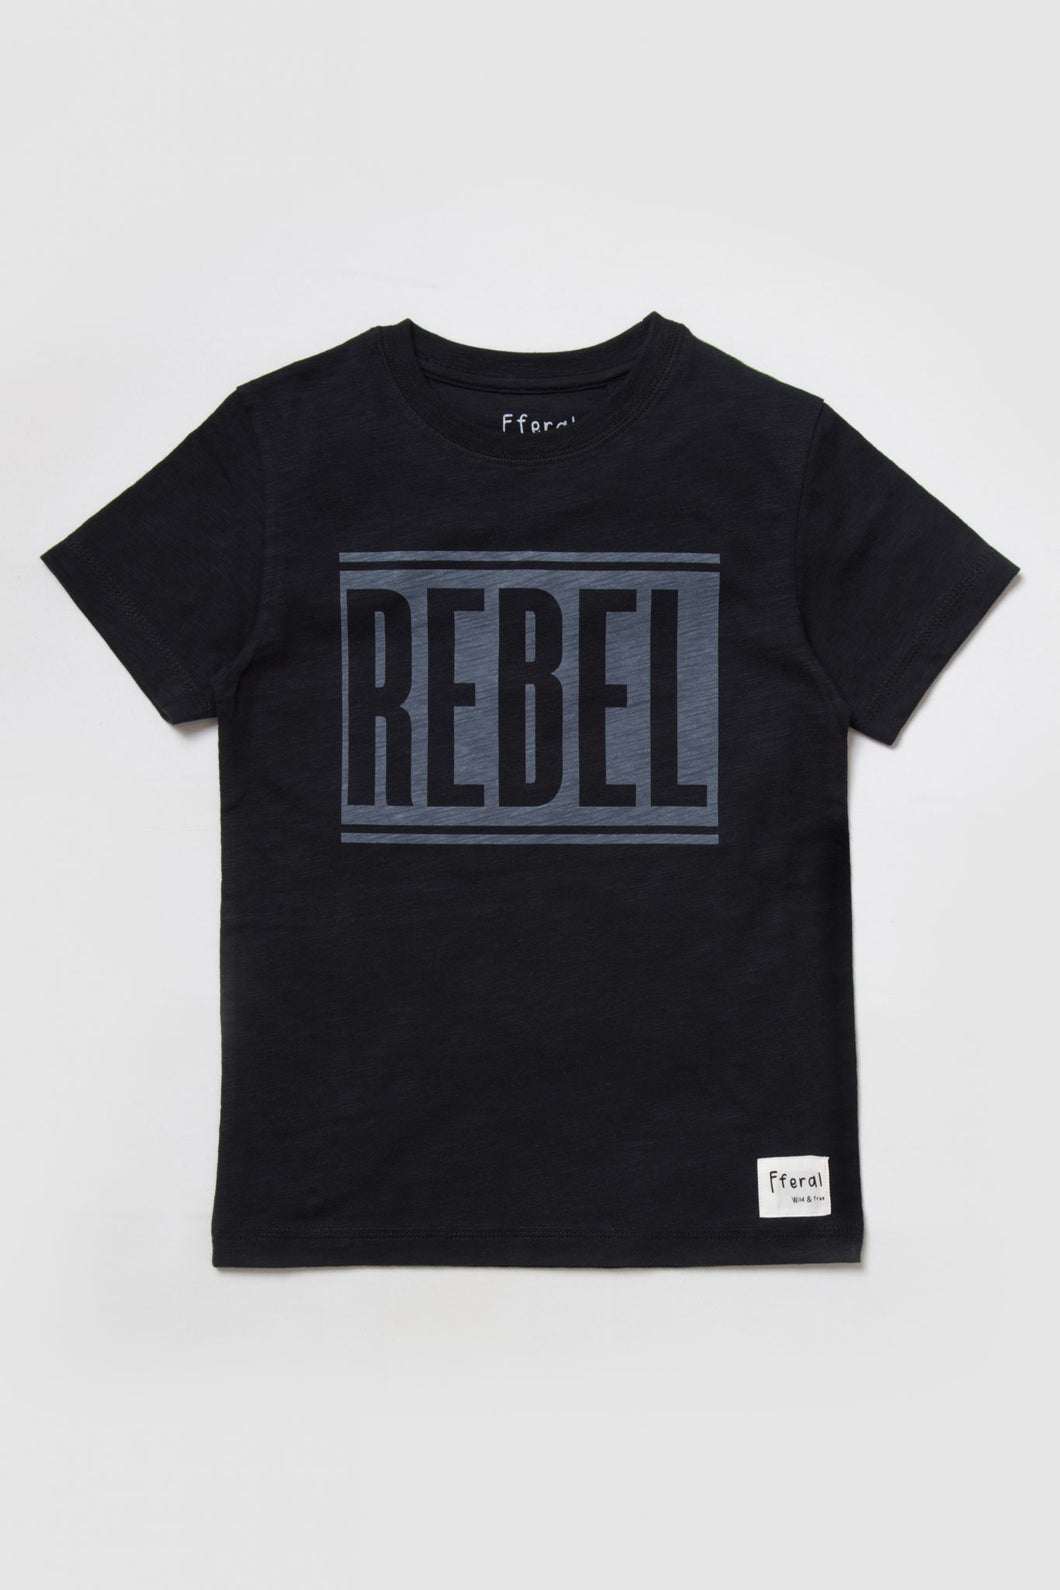 kids cotton tshirt with rebel print